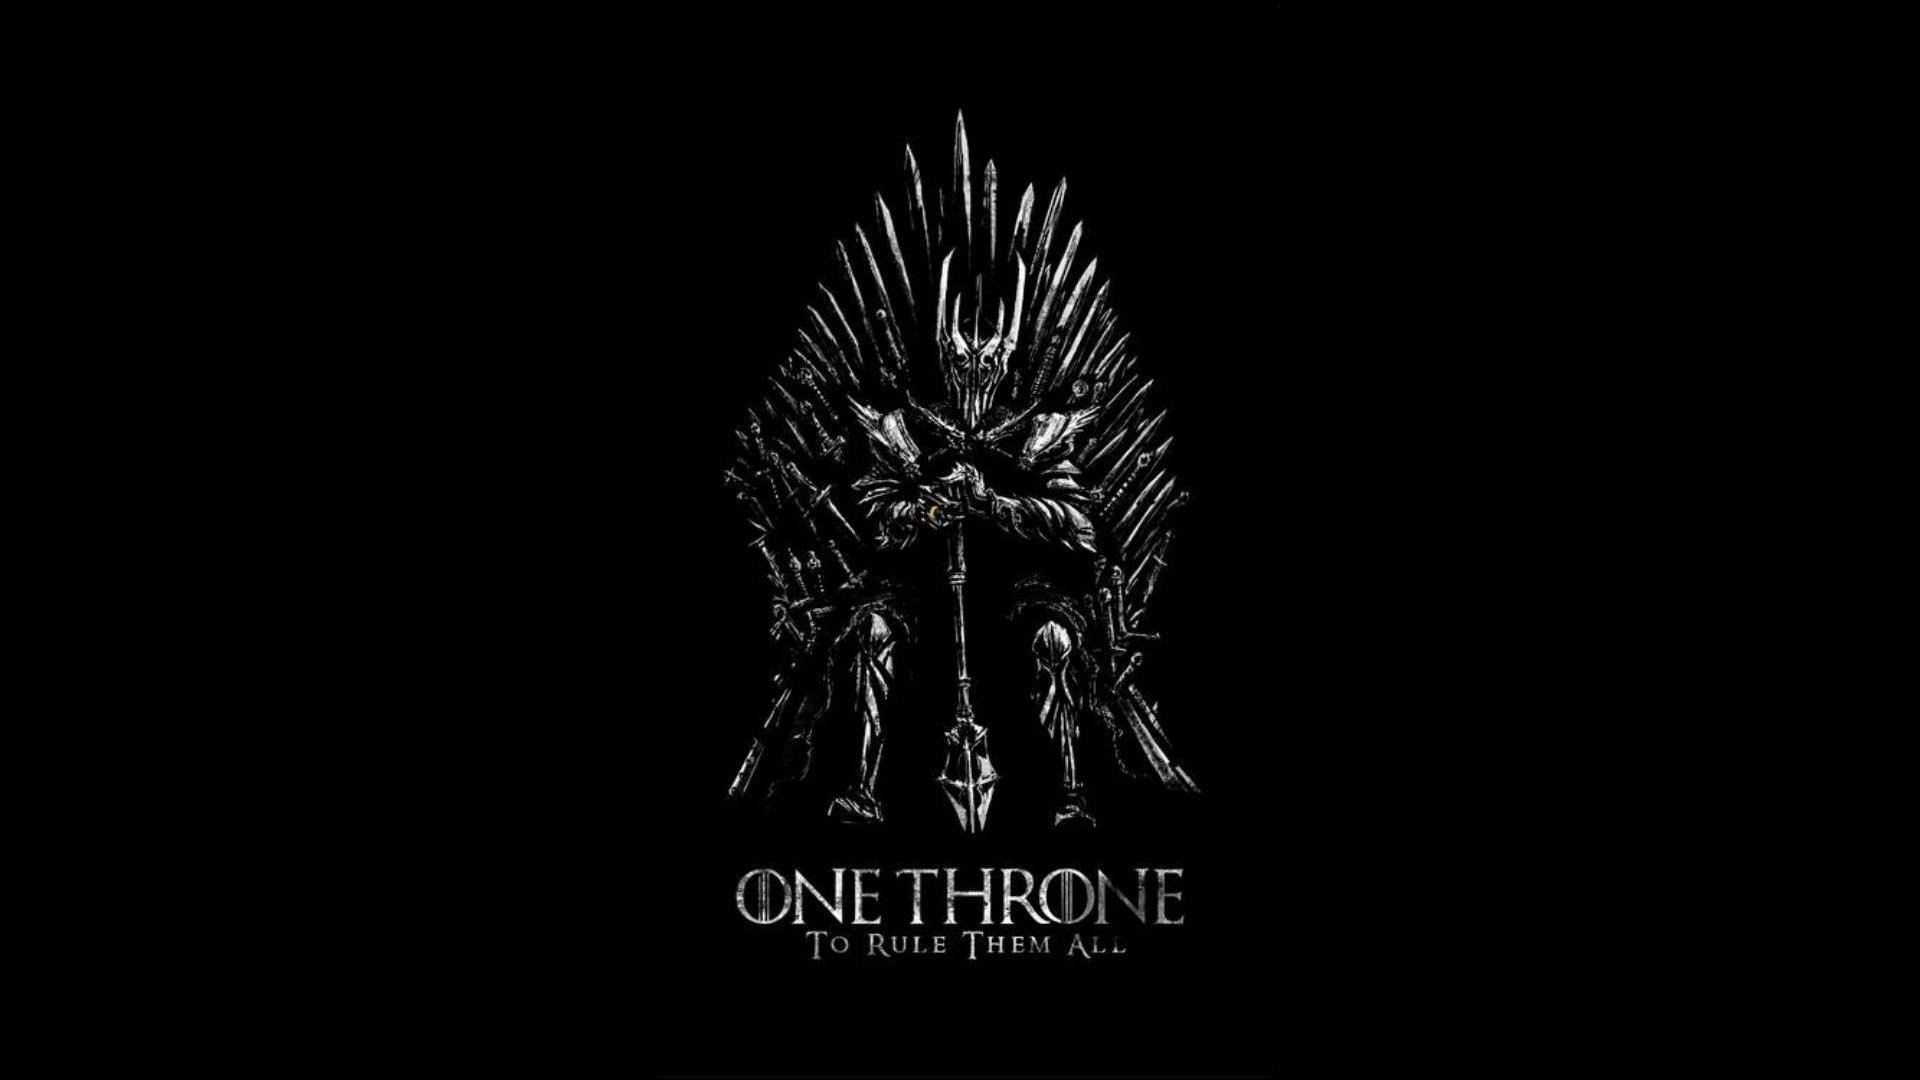 Game Of Thrones Iron Throne Sauron The Lord Rings …